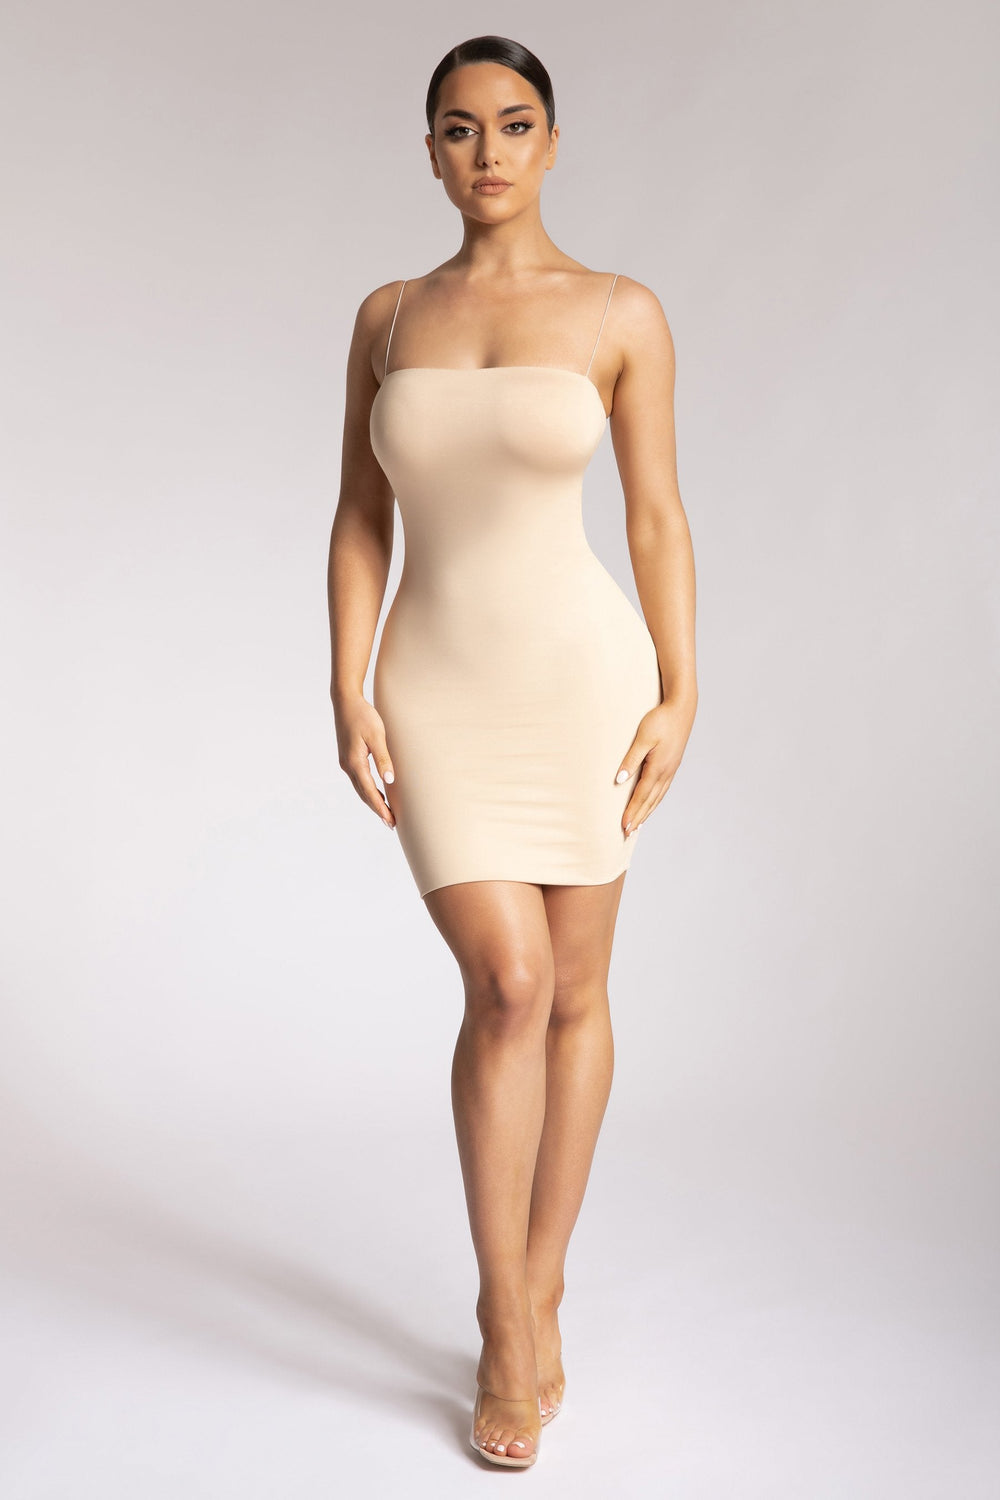 Mia Thin Strap Bodycon Mini Dress - Nude - MESHKI ?id=15419664629835